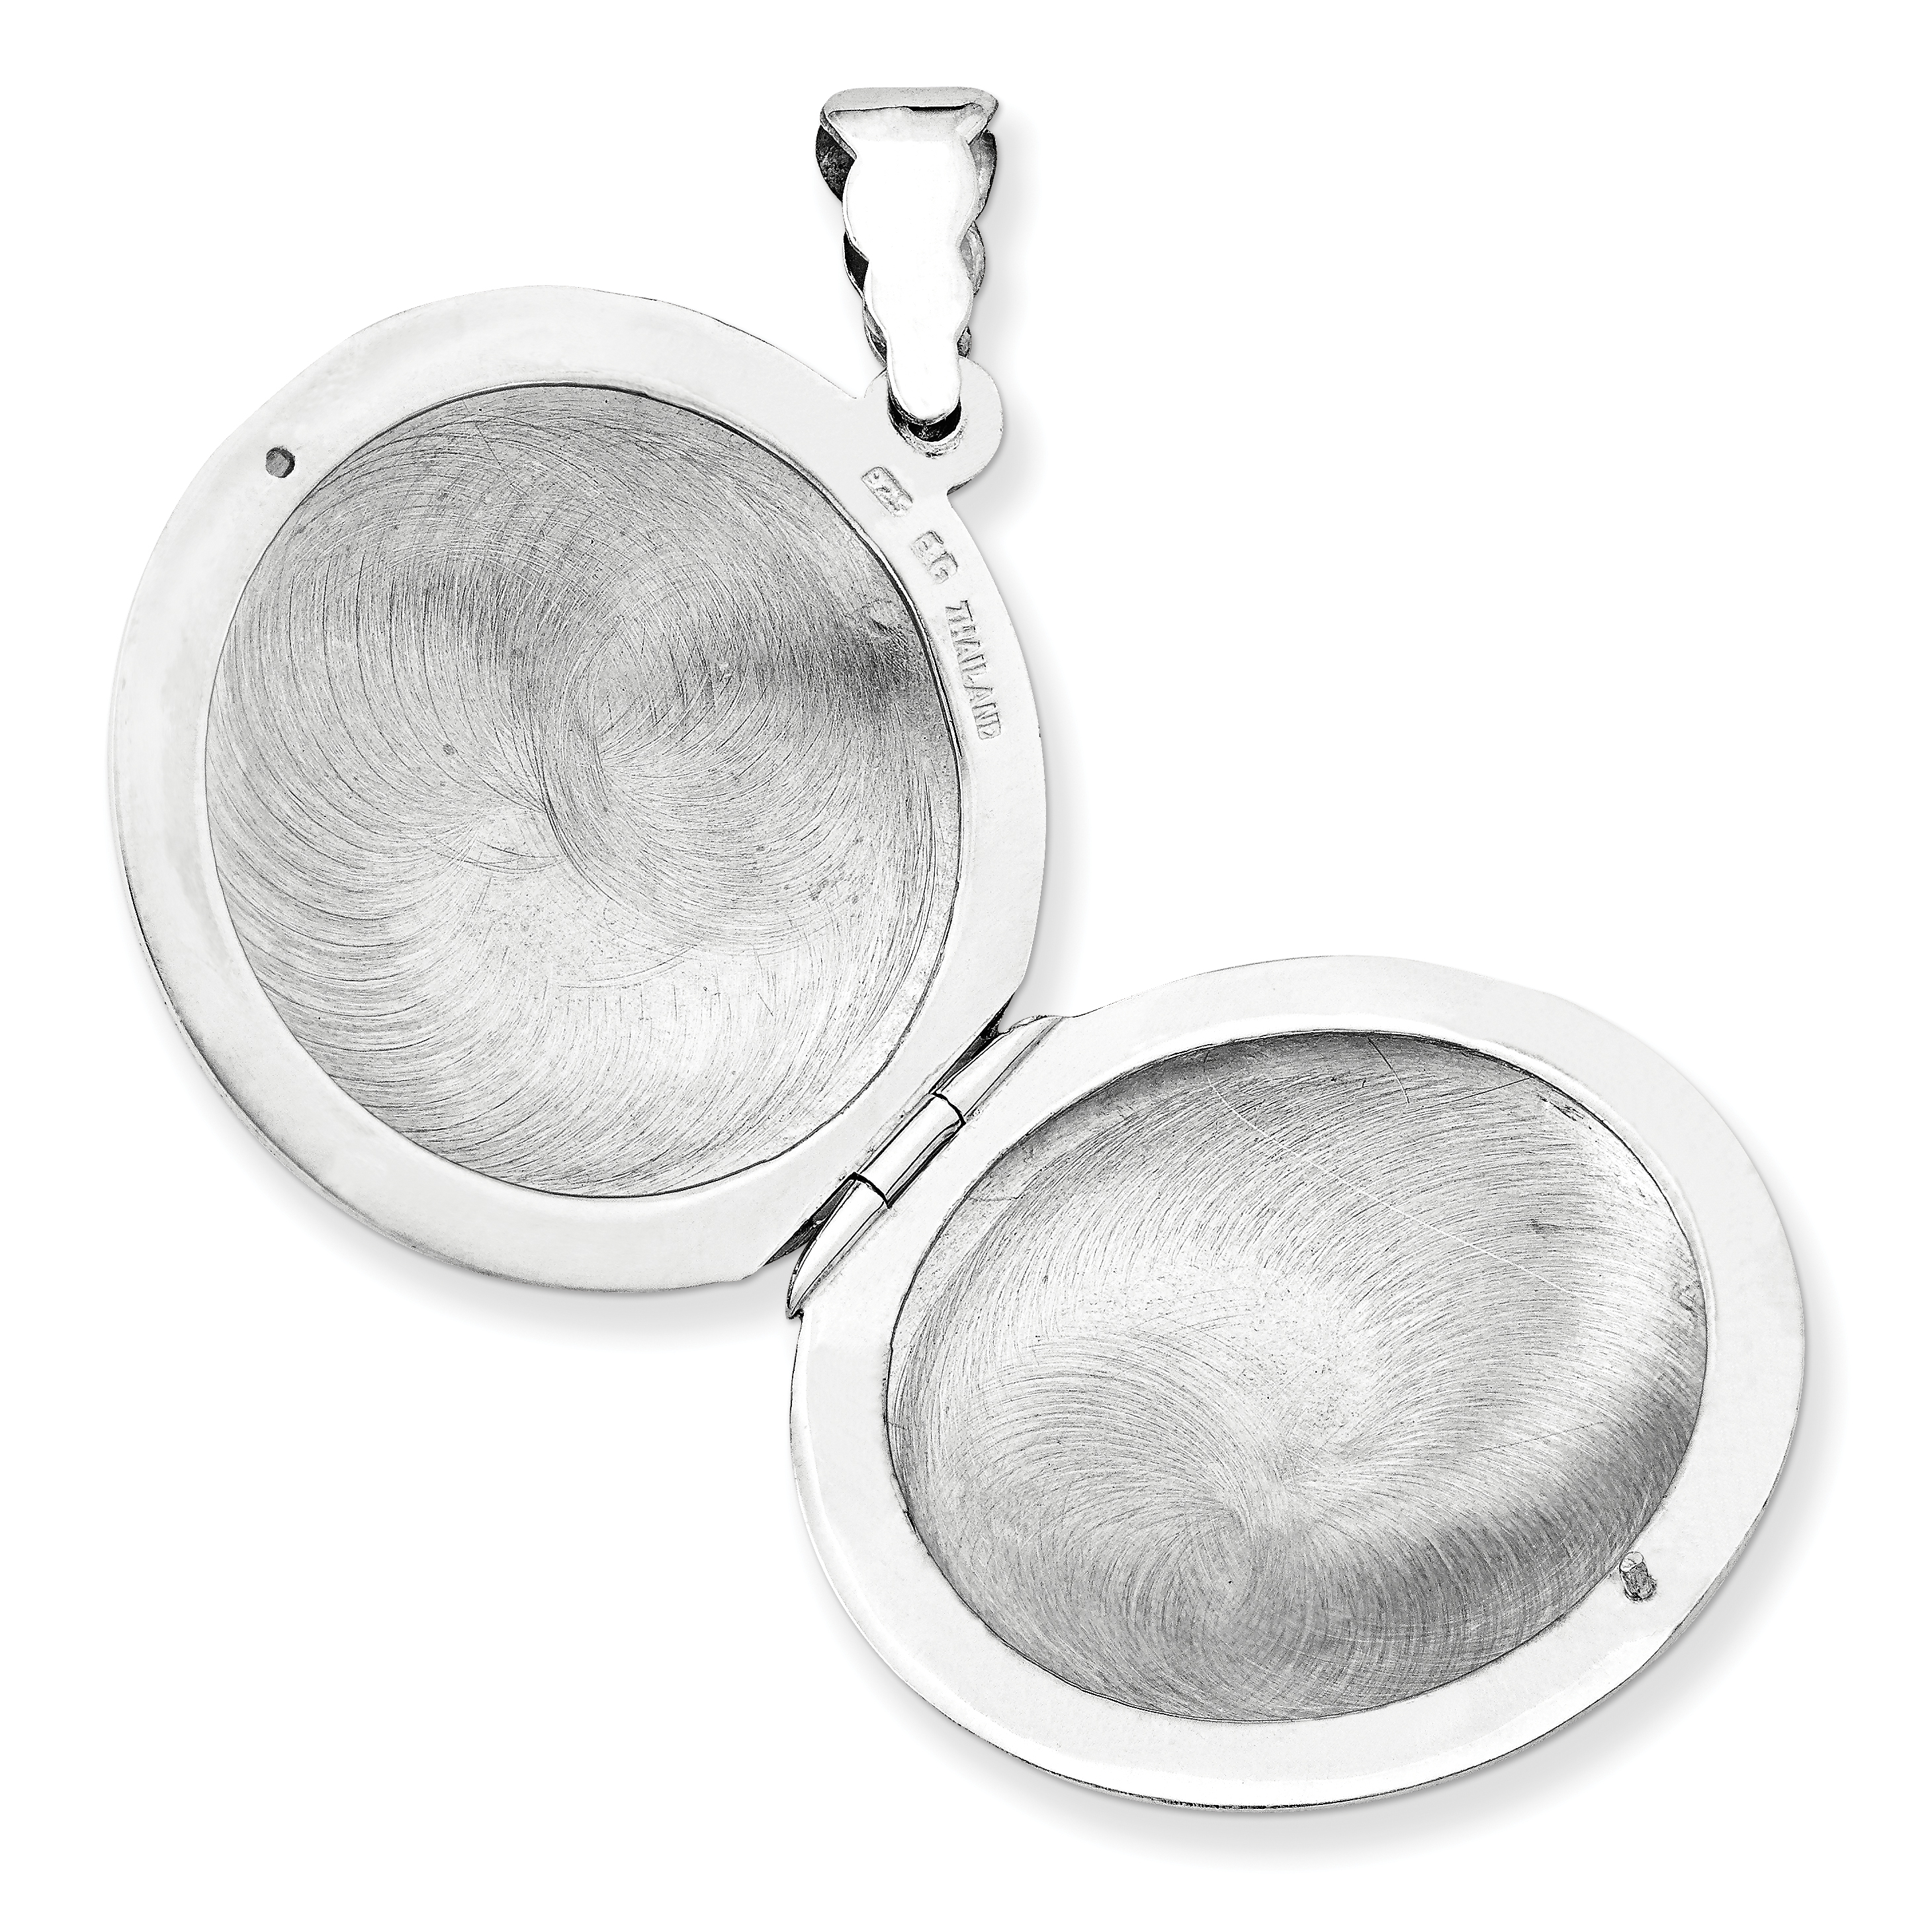 925 Sterling Silver Domed Photo Pendant Charm Locket Chain Necklace That Holds Pictures Shaped Fine Jewelry Gifts For Women For Her - image 2 de 3